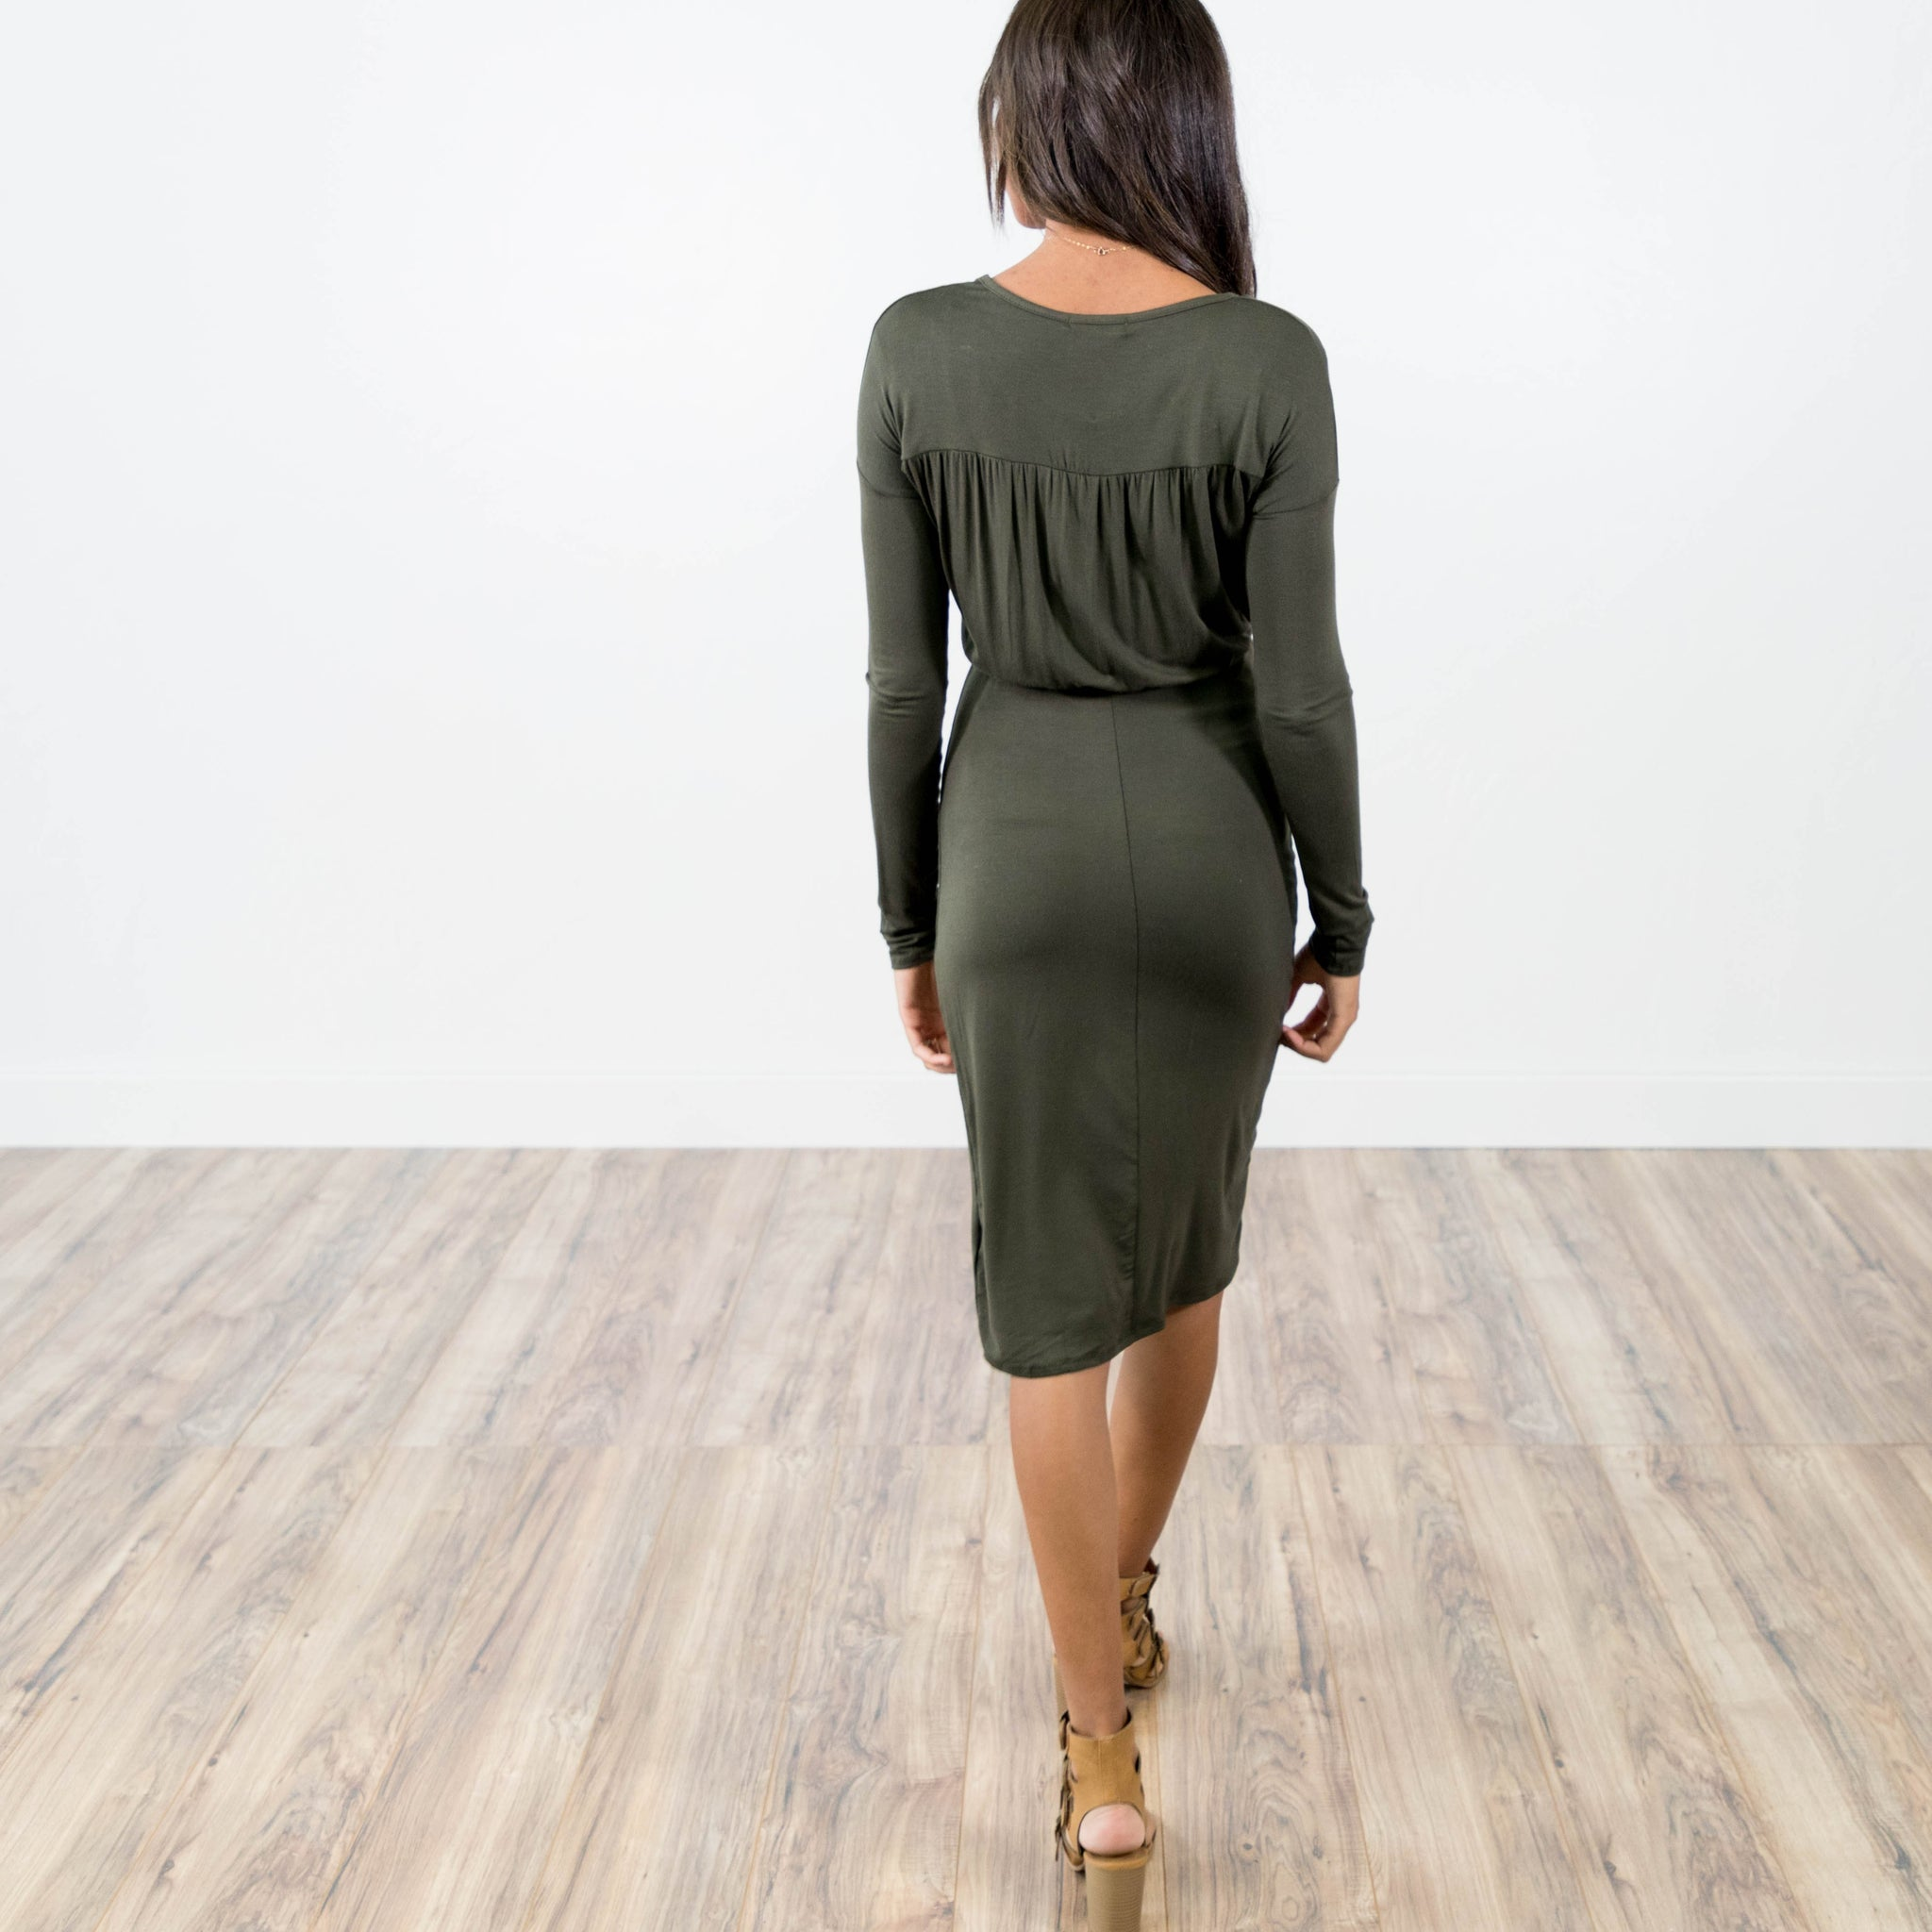 Nicole Dress in Olive